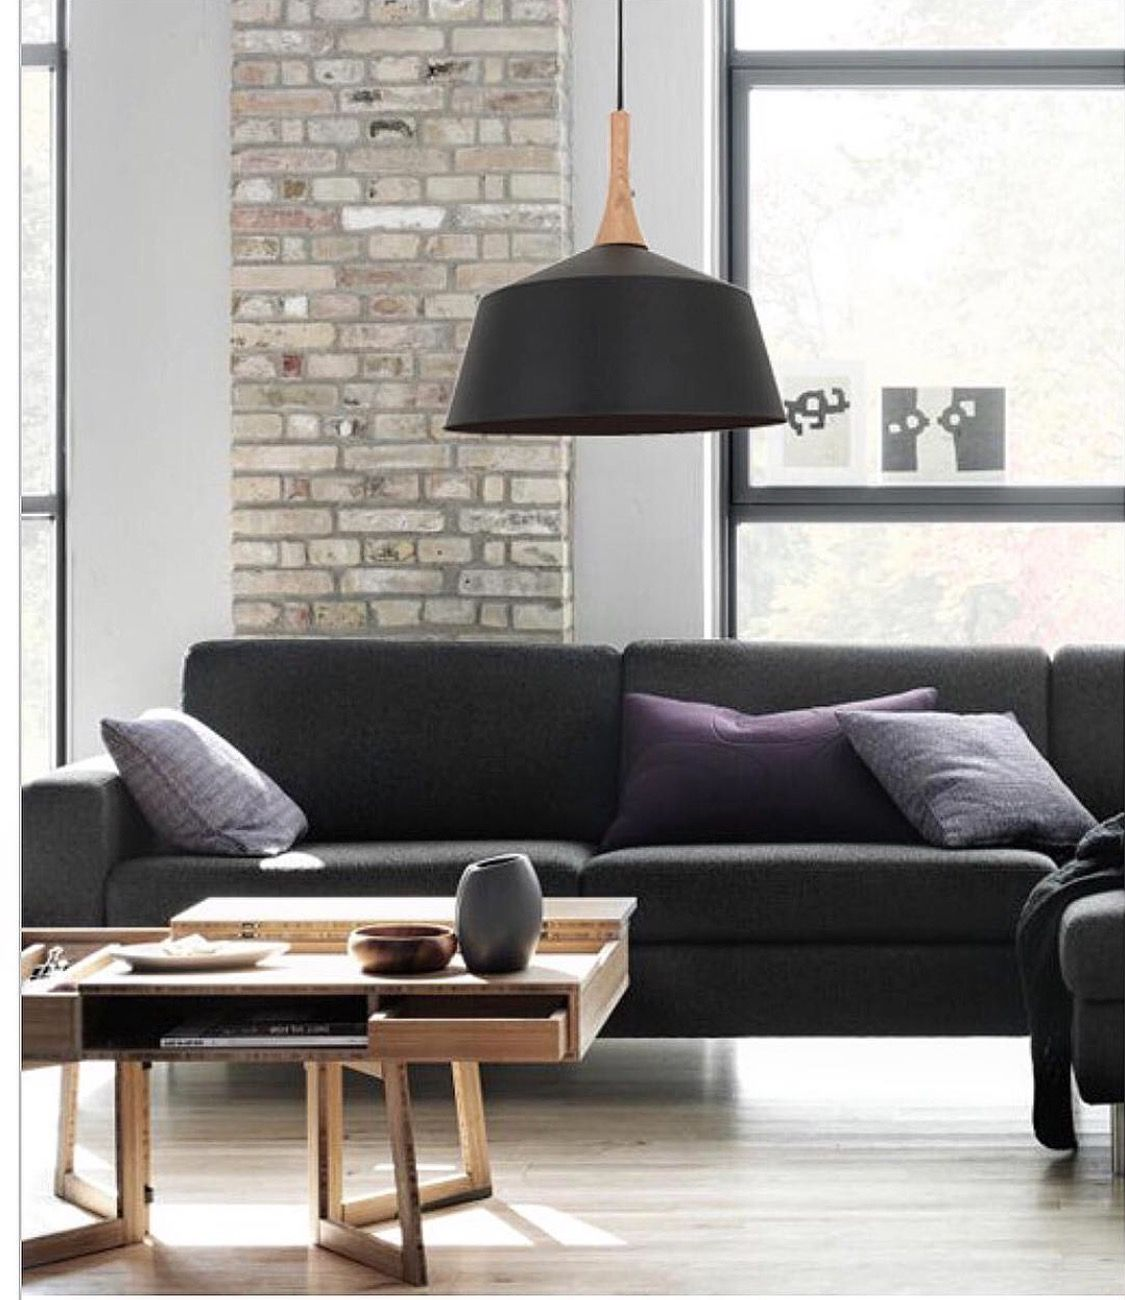 Nordic pendant light is available in black and white in